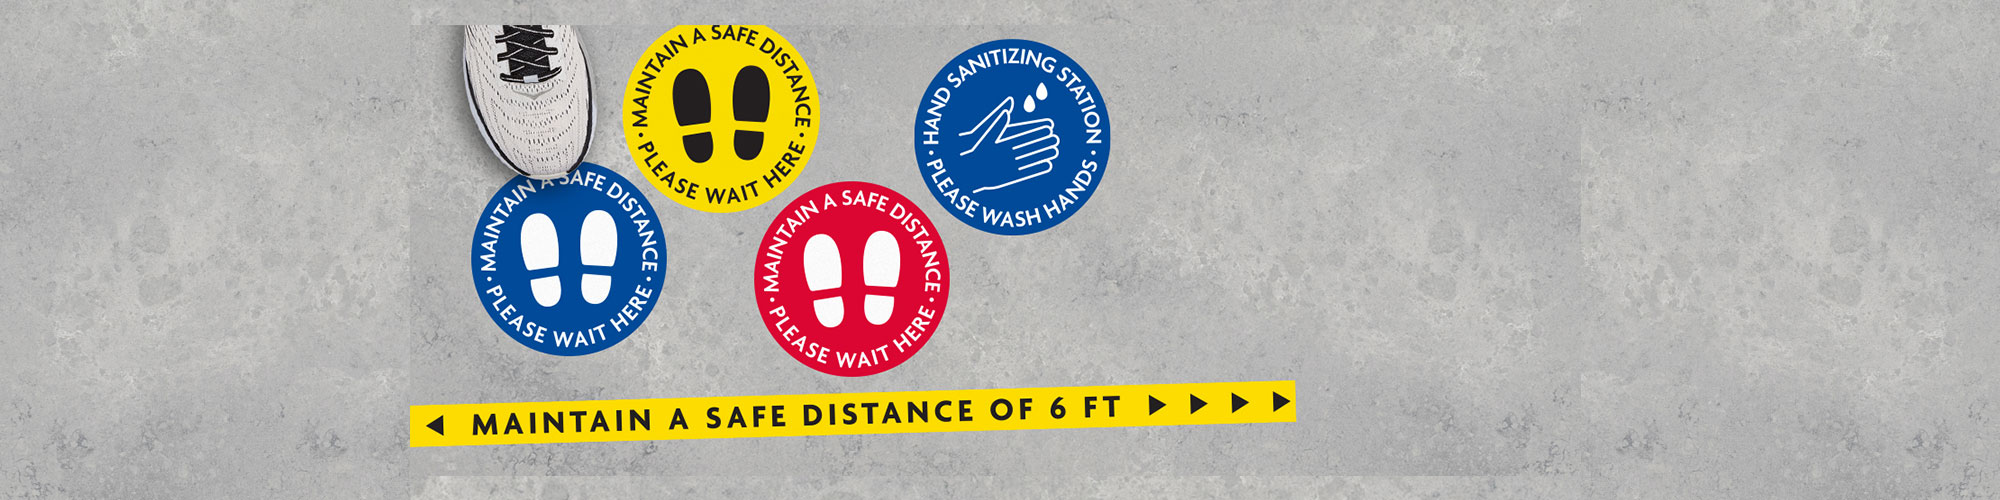 Maintain a Safe Distance Floor Decal